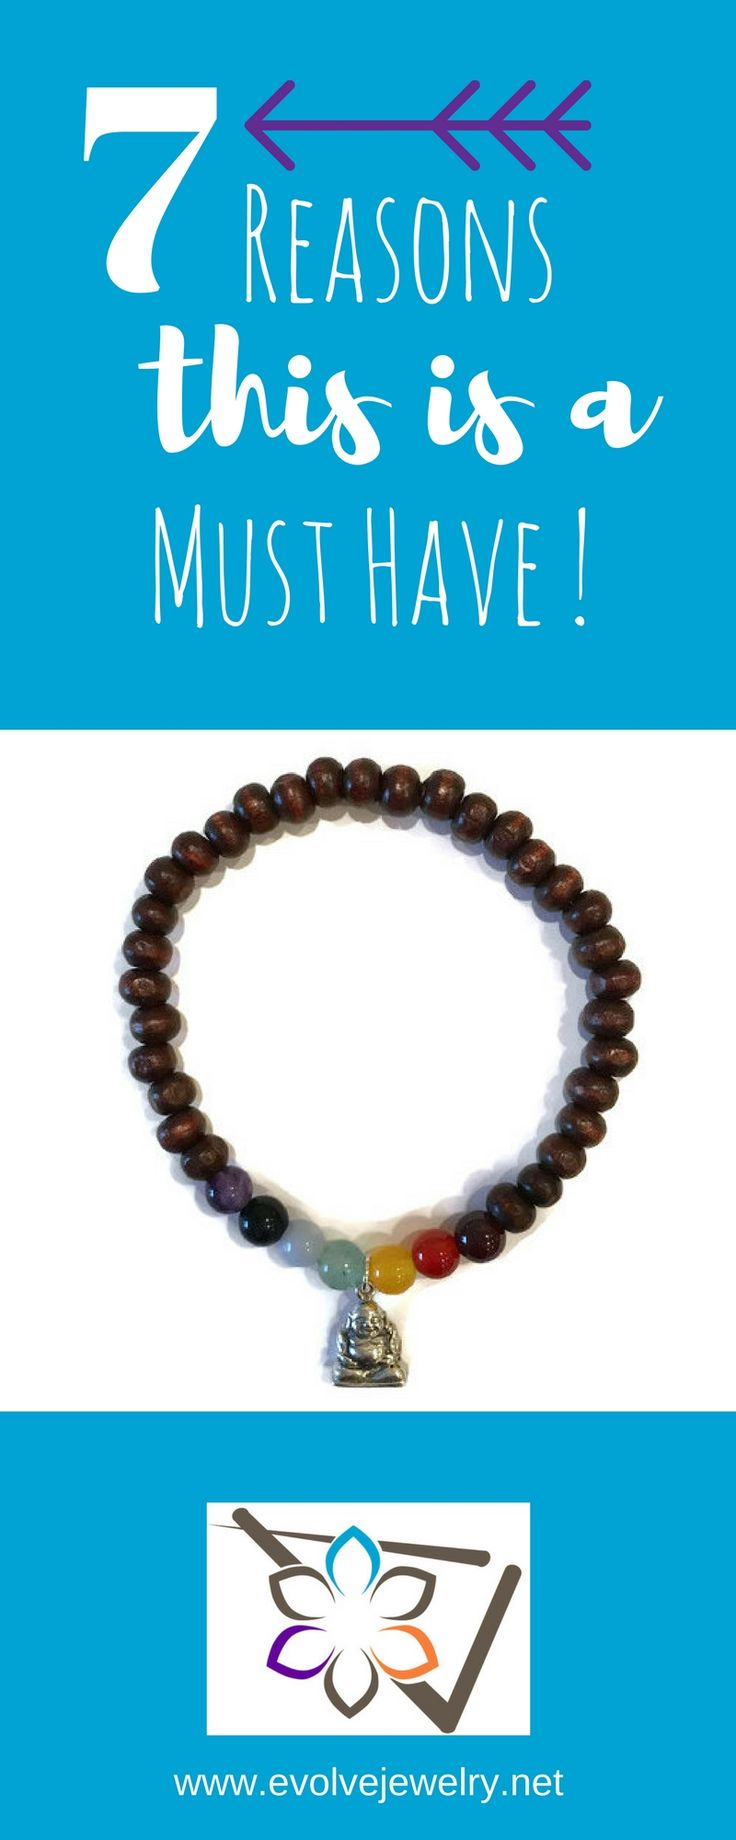 This Chakra bracelet has you covered! It contains healing gemstones for all 7 Chakras. Garnet, Carnelian, Yellow Jade, Aventurine, Angelite, Blue Goldstone, and Amethyst crystals on a wood bead bracelet.